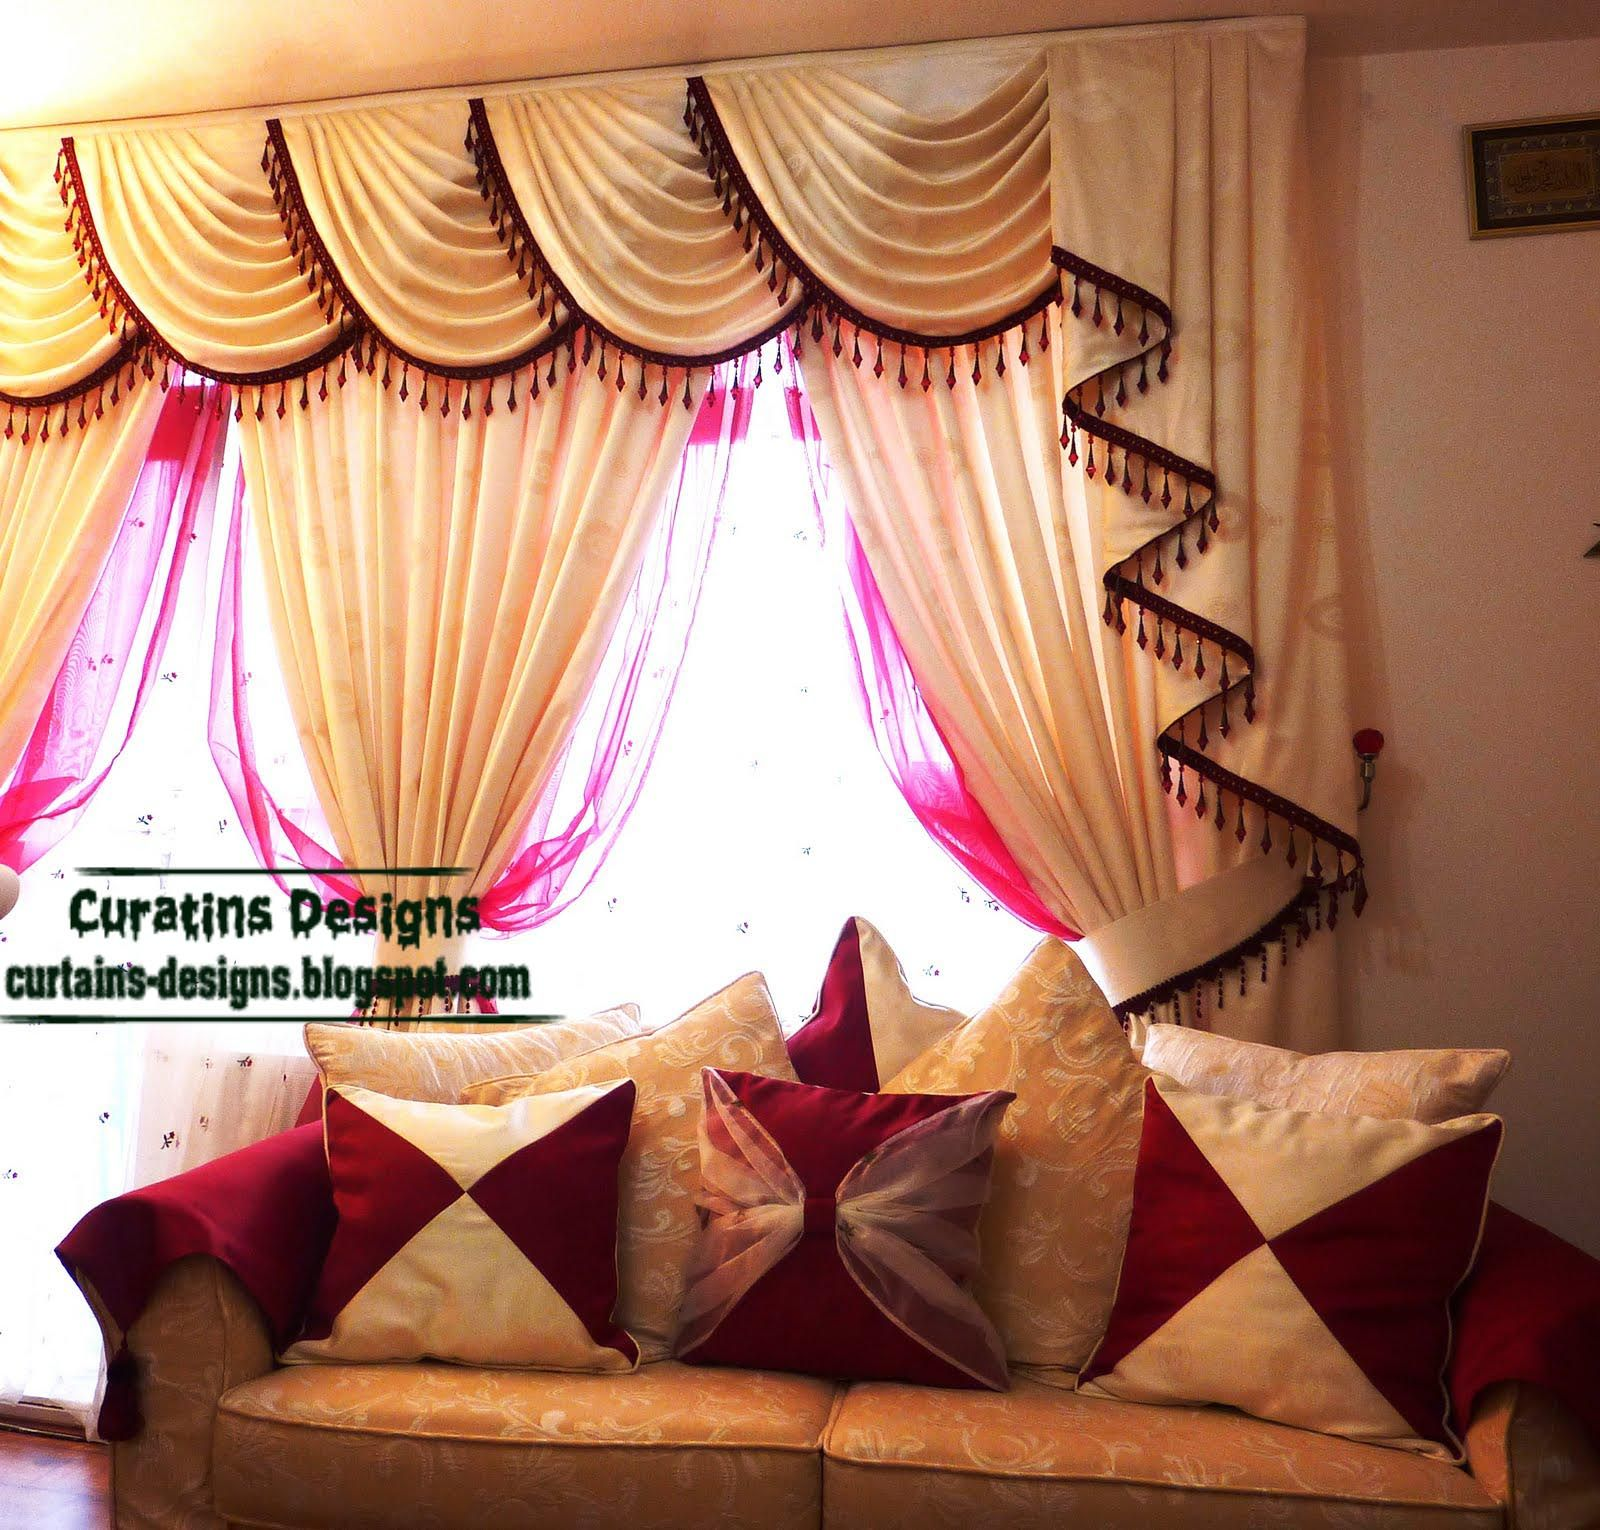 Living Room Curtains Design Brilliant Livingroomcurtains  Indian Drapes Curtain Design For Living Decorating Design